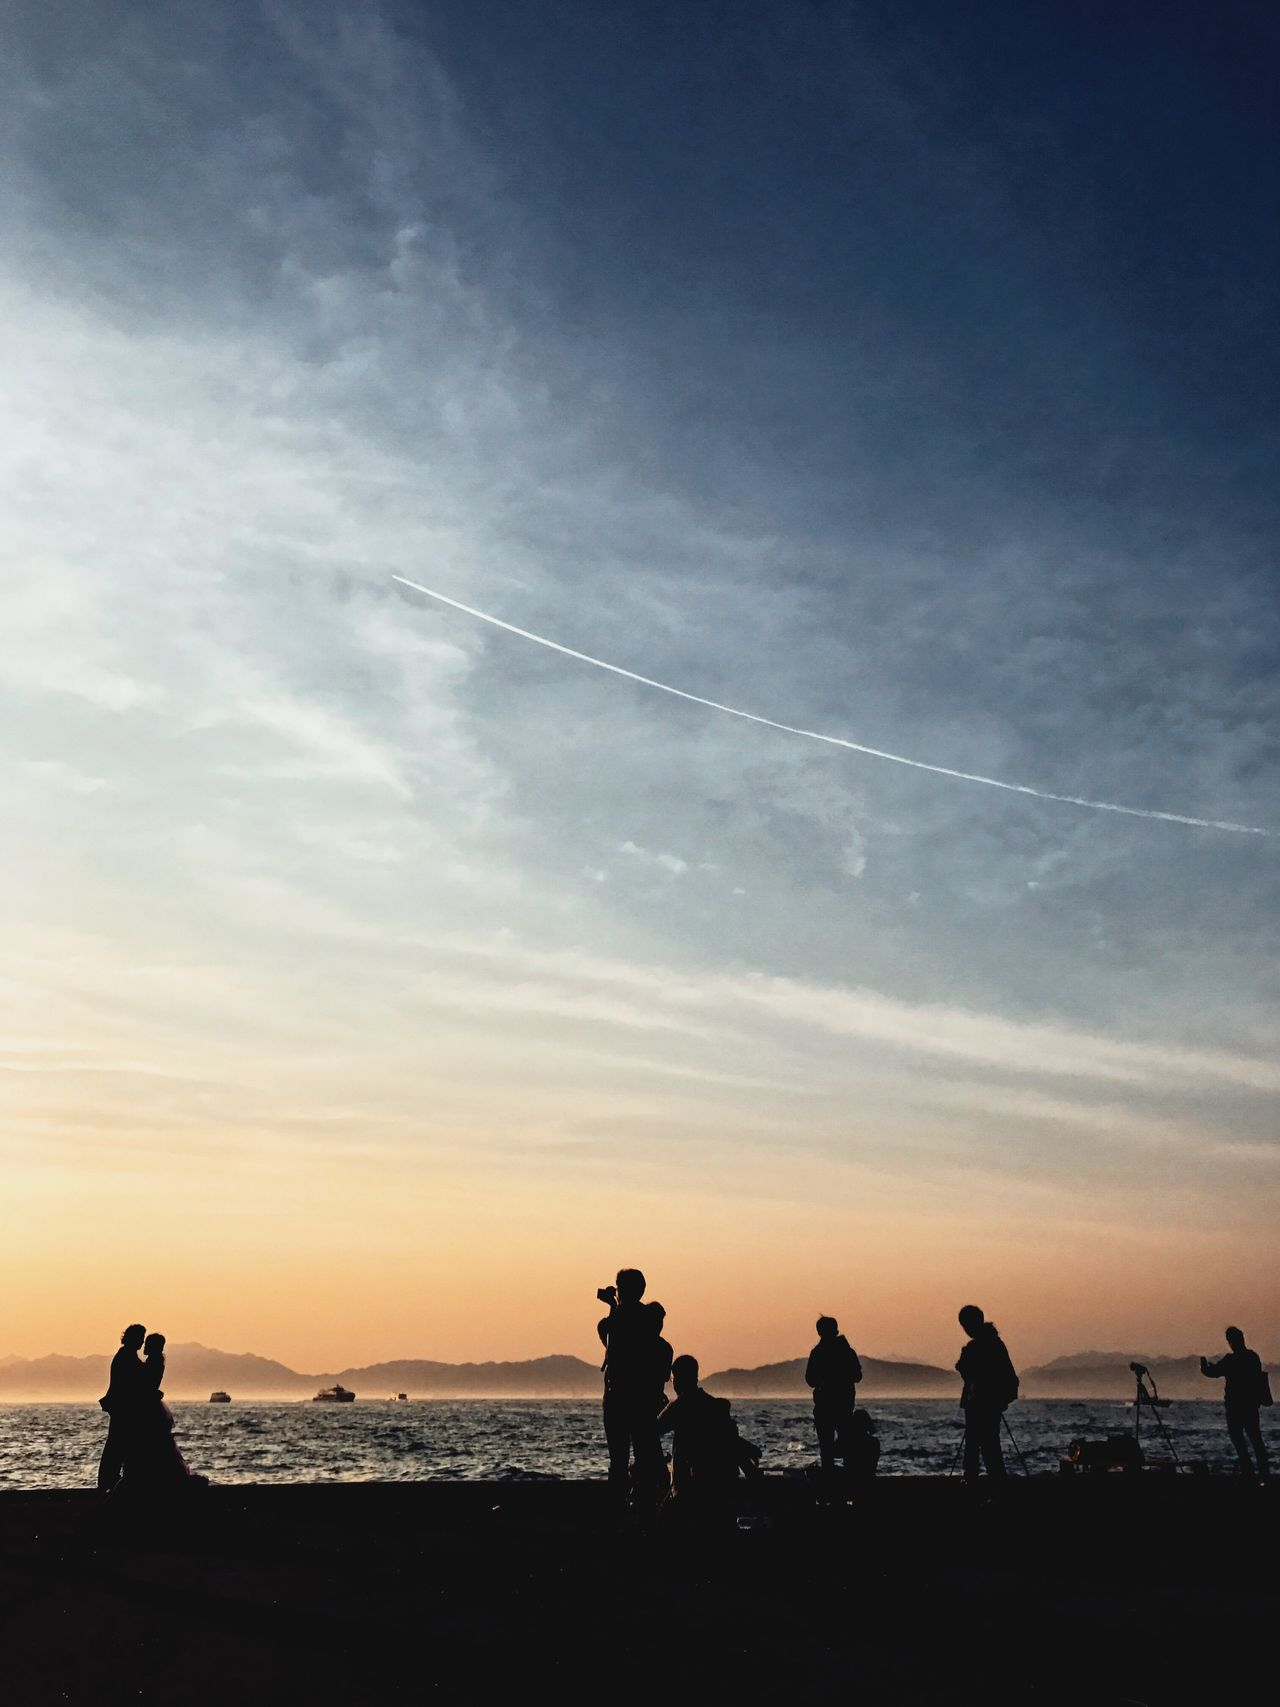 IPhone IPhone7Plus IPhoneography ShotOnIphone Sunset Sky The Great Outdoors - 2017 EyeEm Awards The Street Photographer - 2017 EyeEm Awards The Photojournalist - 2017 EyeEm Awards Hong Kong HongKong Live For The Story